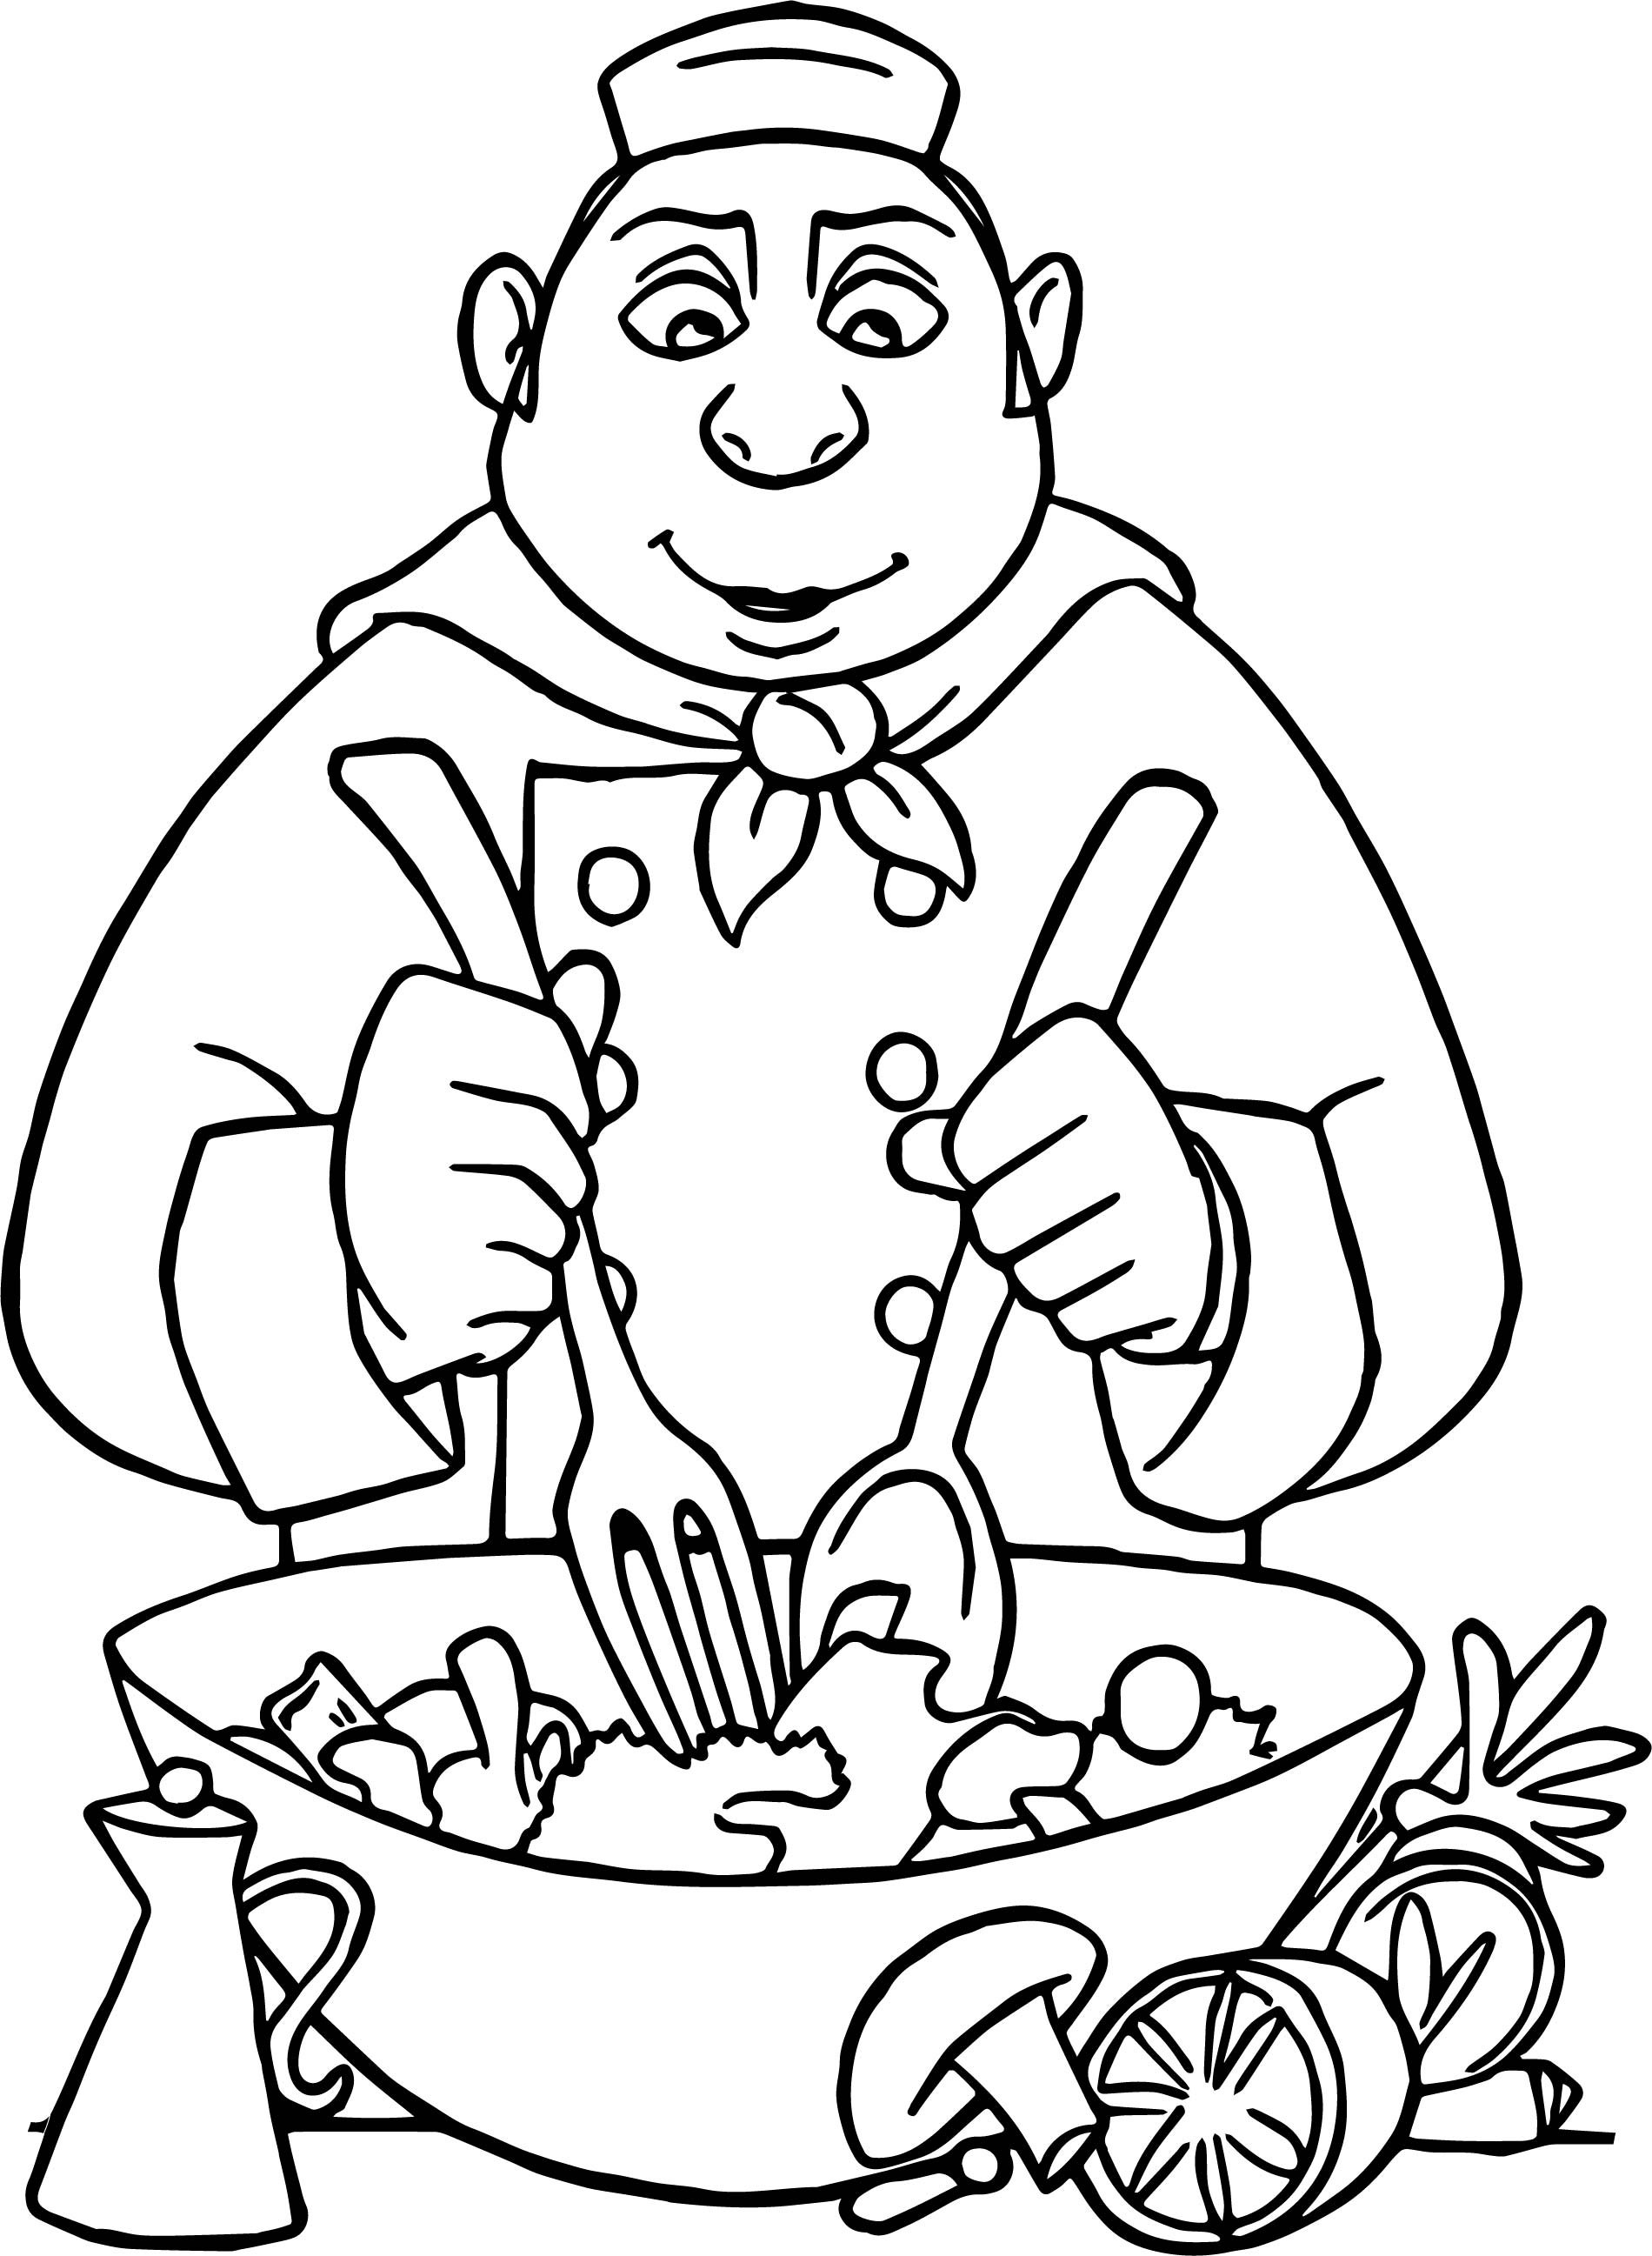 Ratatouille Making Food Coloring Page